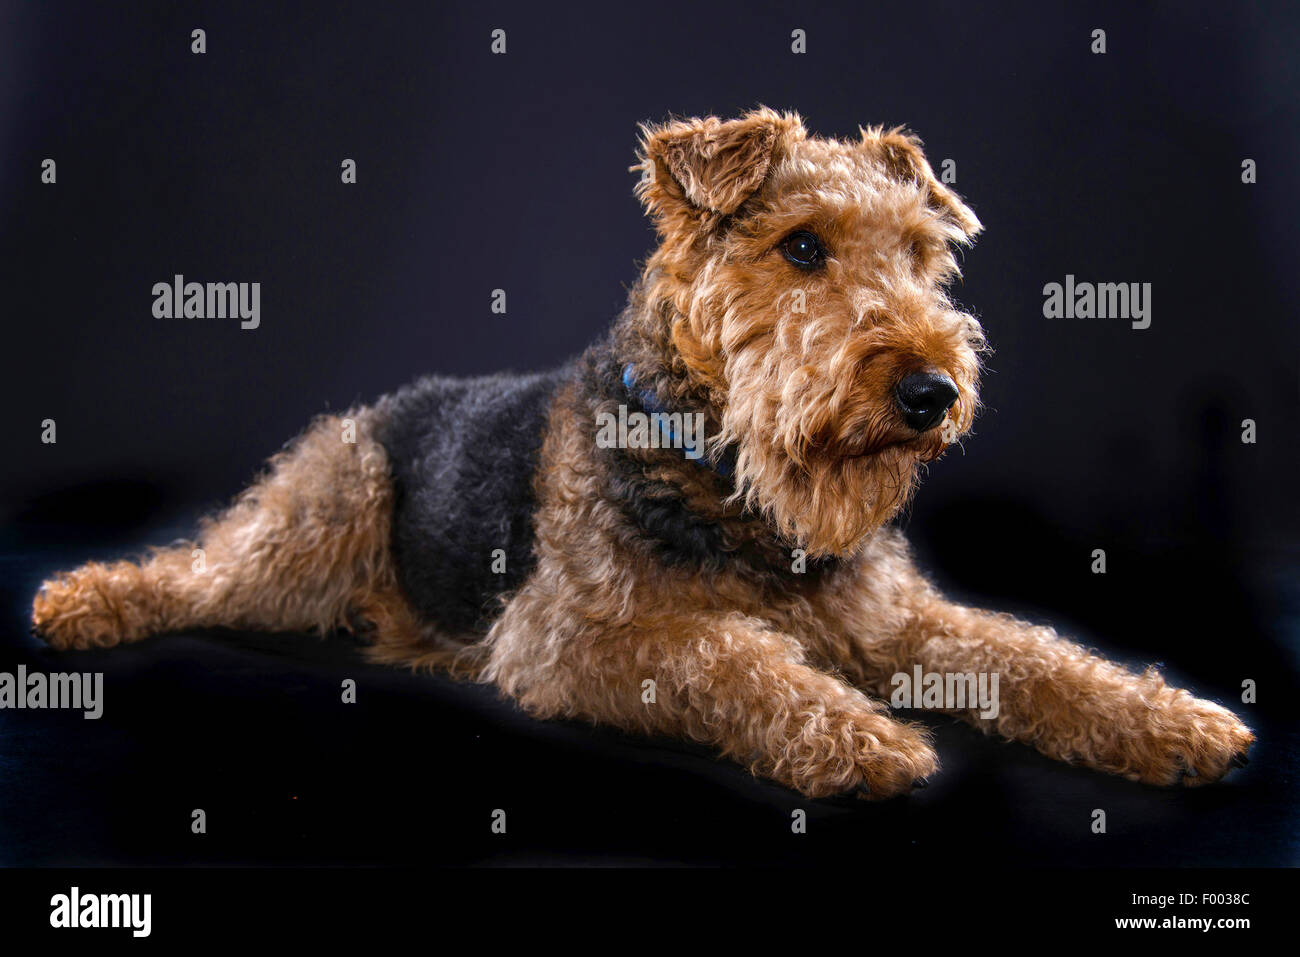 Airedale Terrier (Canis lupus f. familiaris), lying - Stock Image